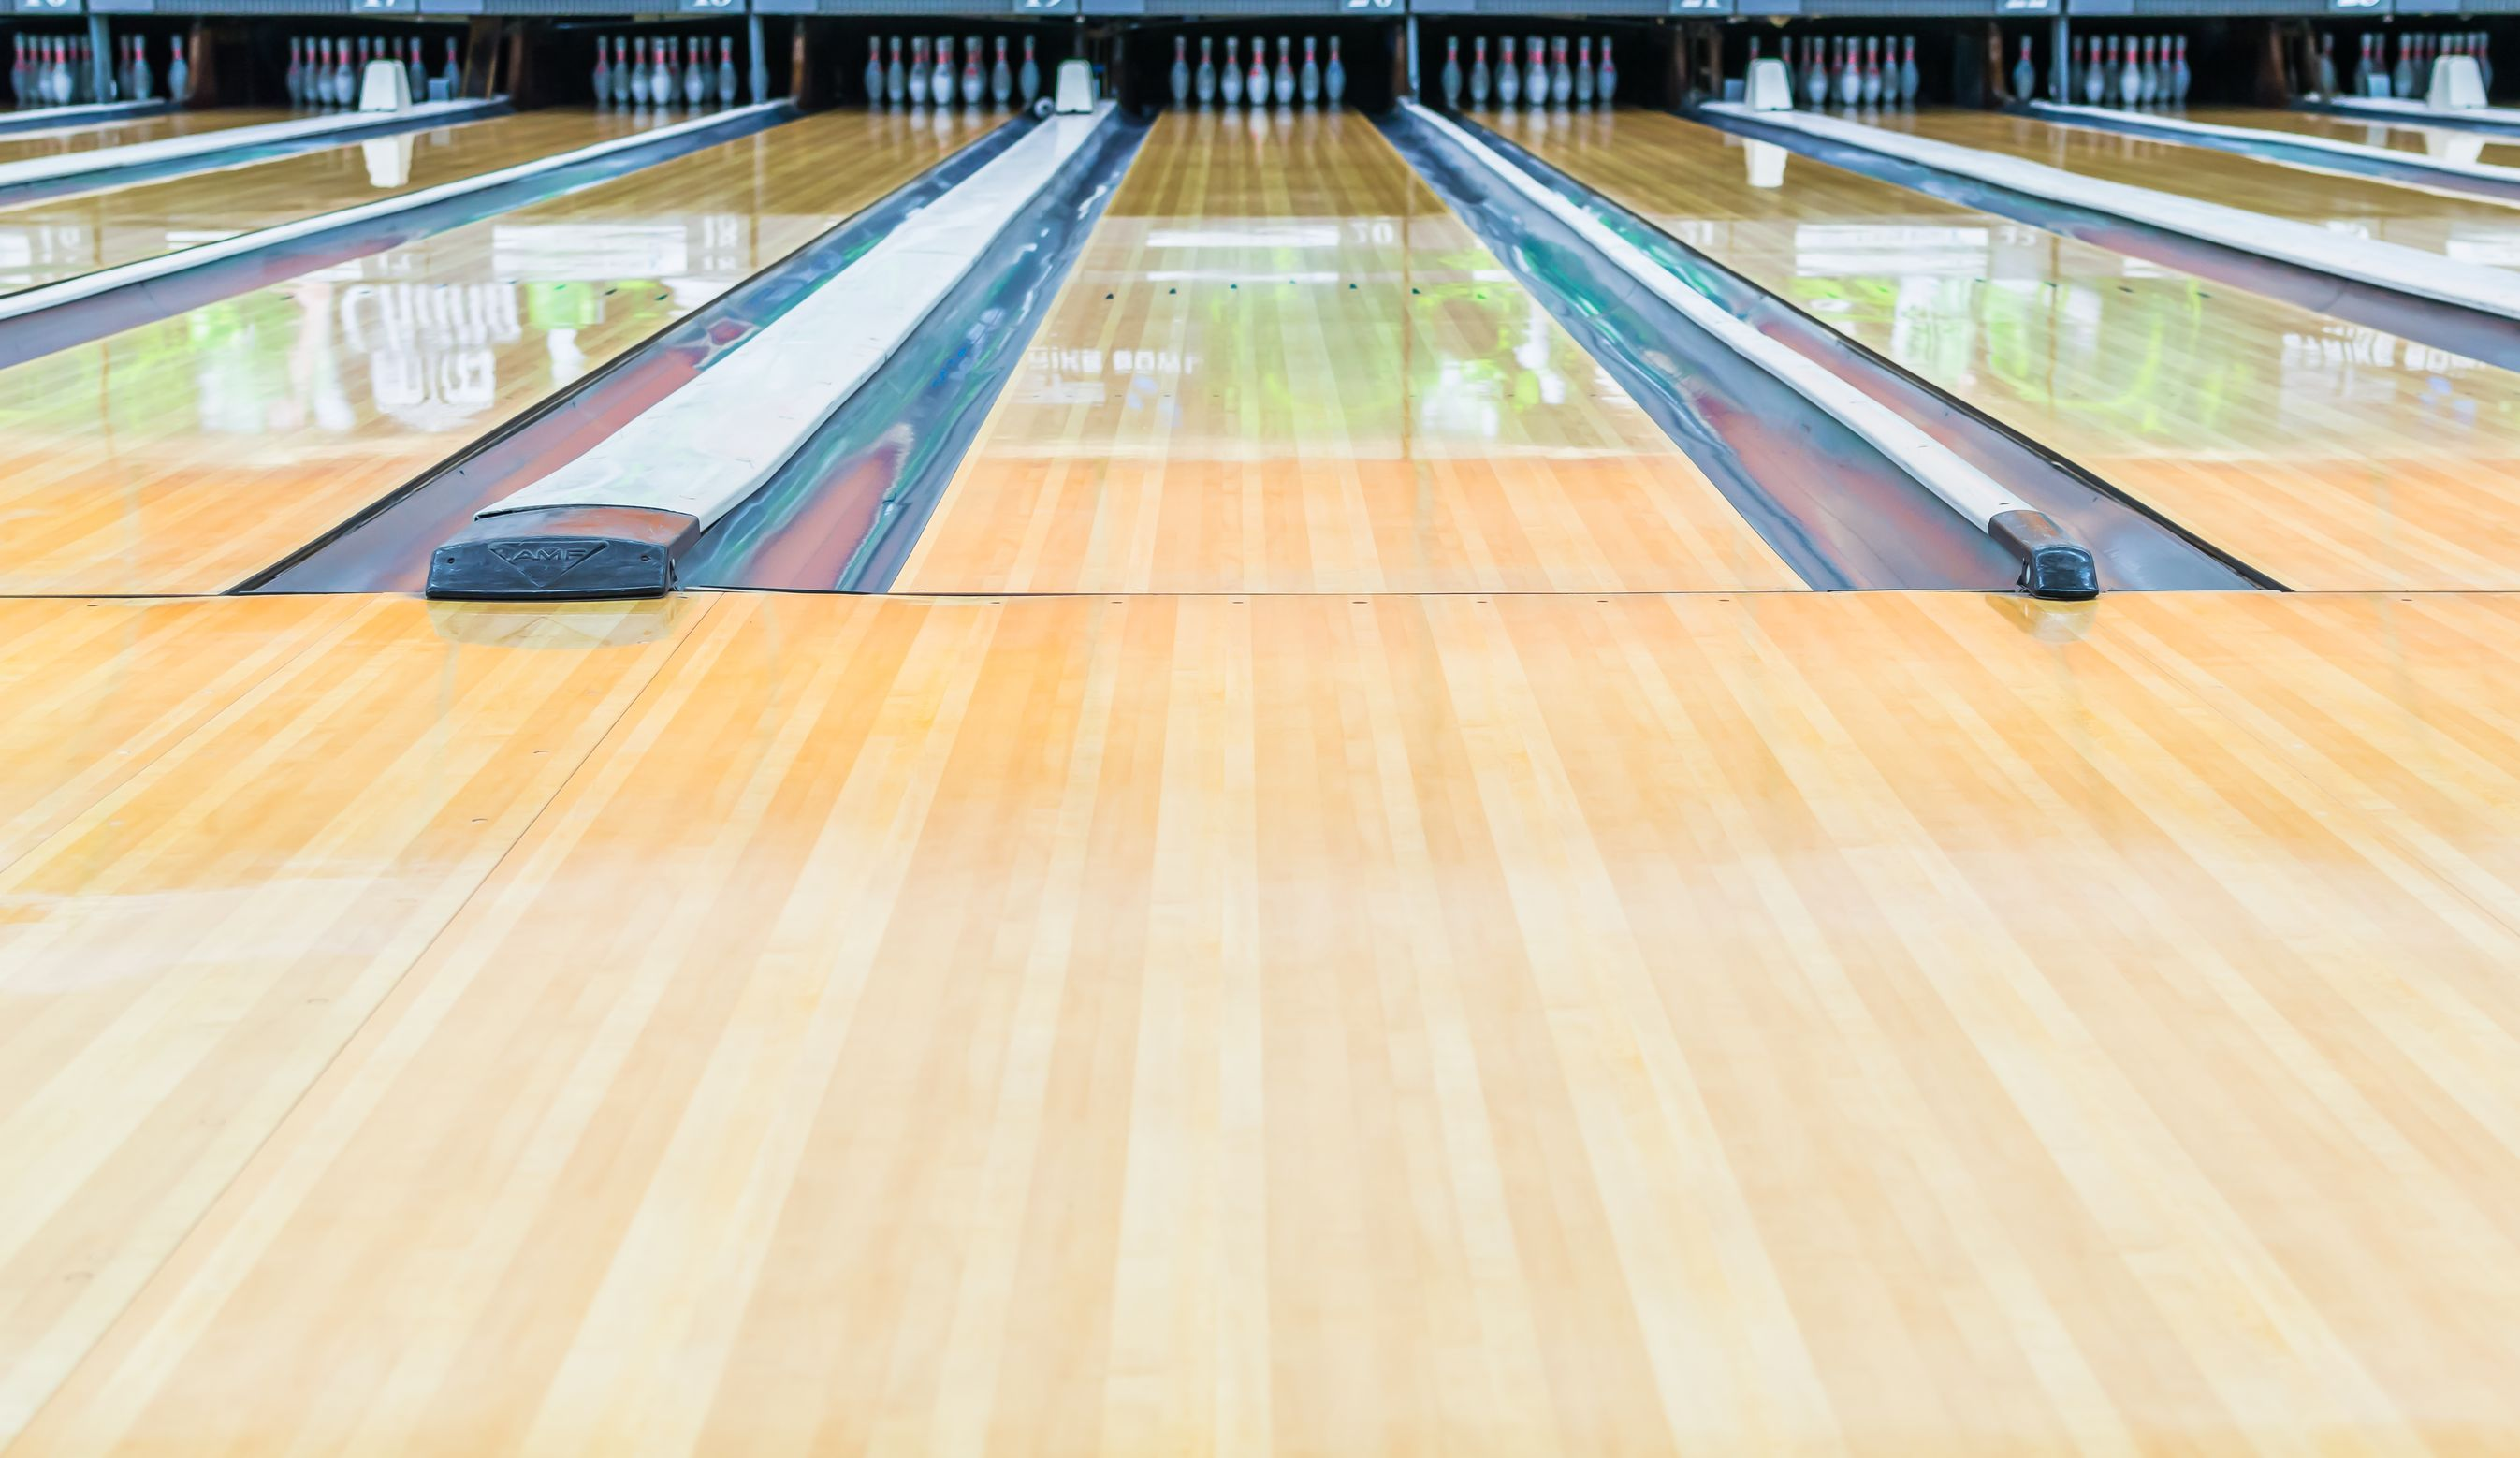 21398091 Bowling Alleywith Surface Polished With Wax